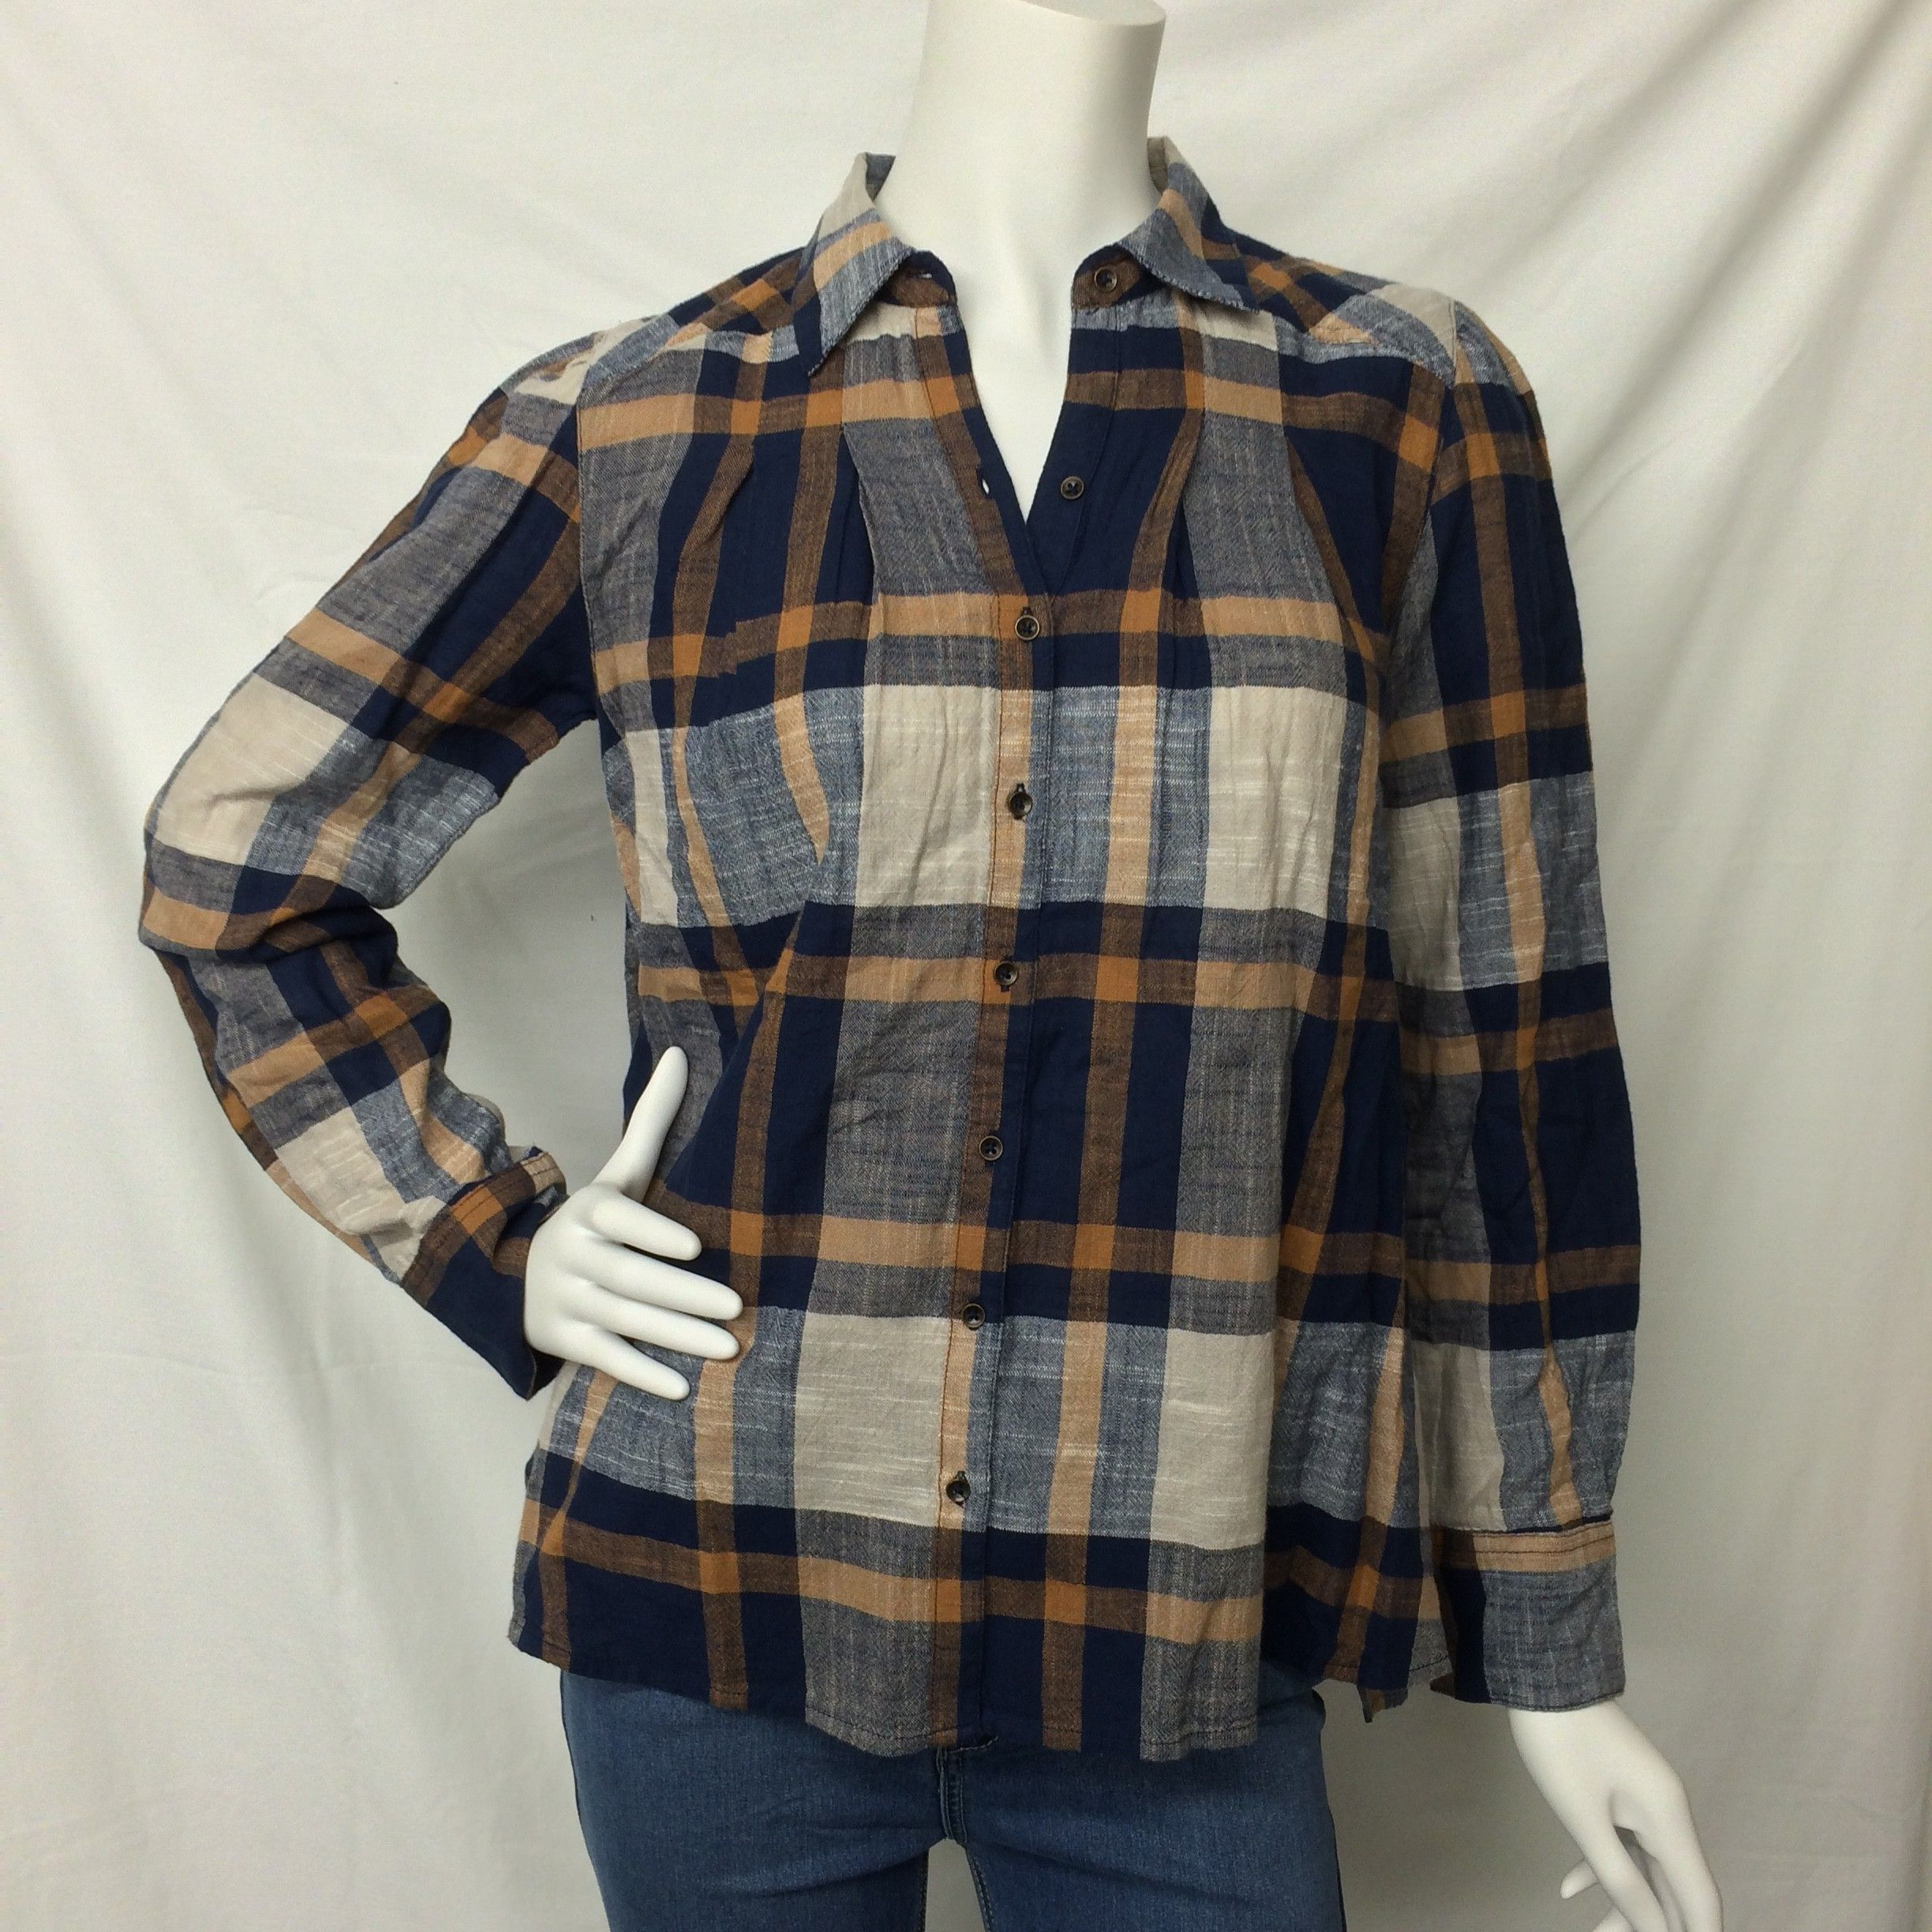 Free People- Navy and White Plaid Button Down Shirt  - Suburban Casuals